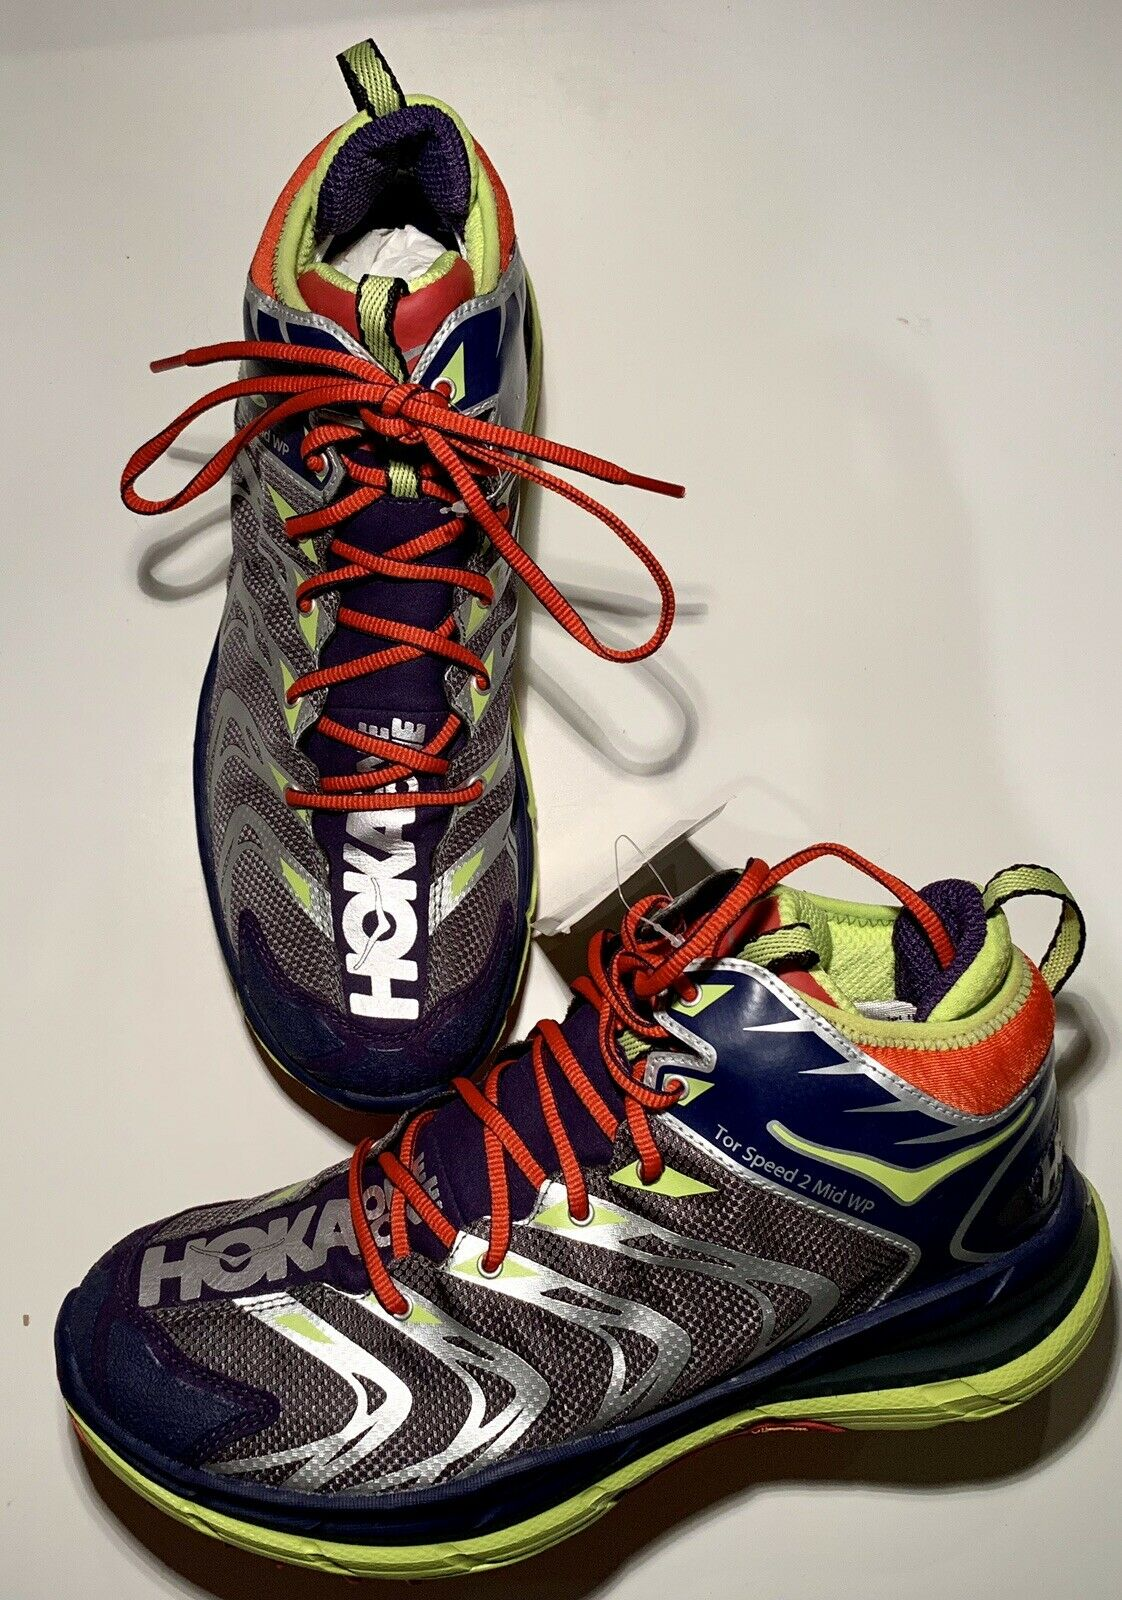 Hoka One One Men's Tor Speed 2 Mid Waterproof PurpLe Green Red Size 9 NWOB B1